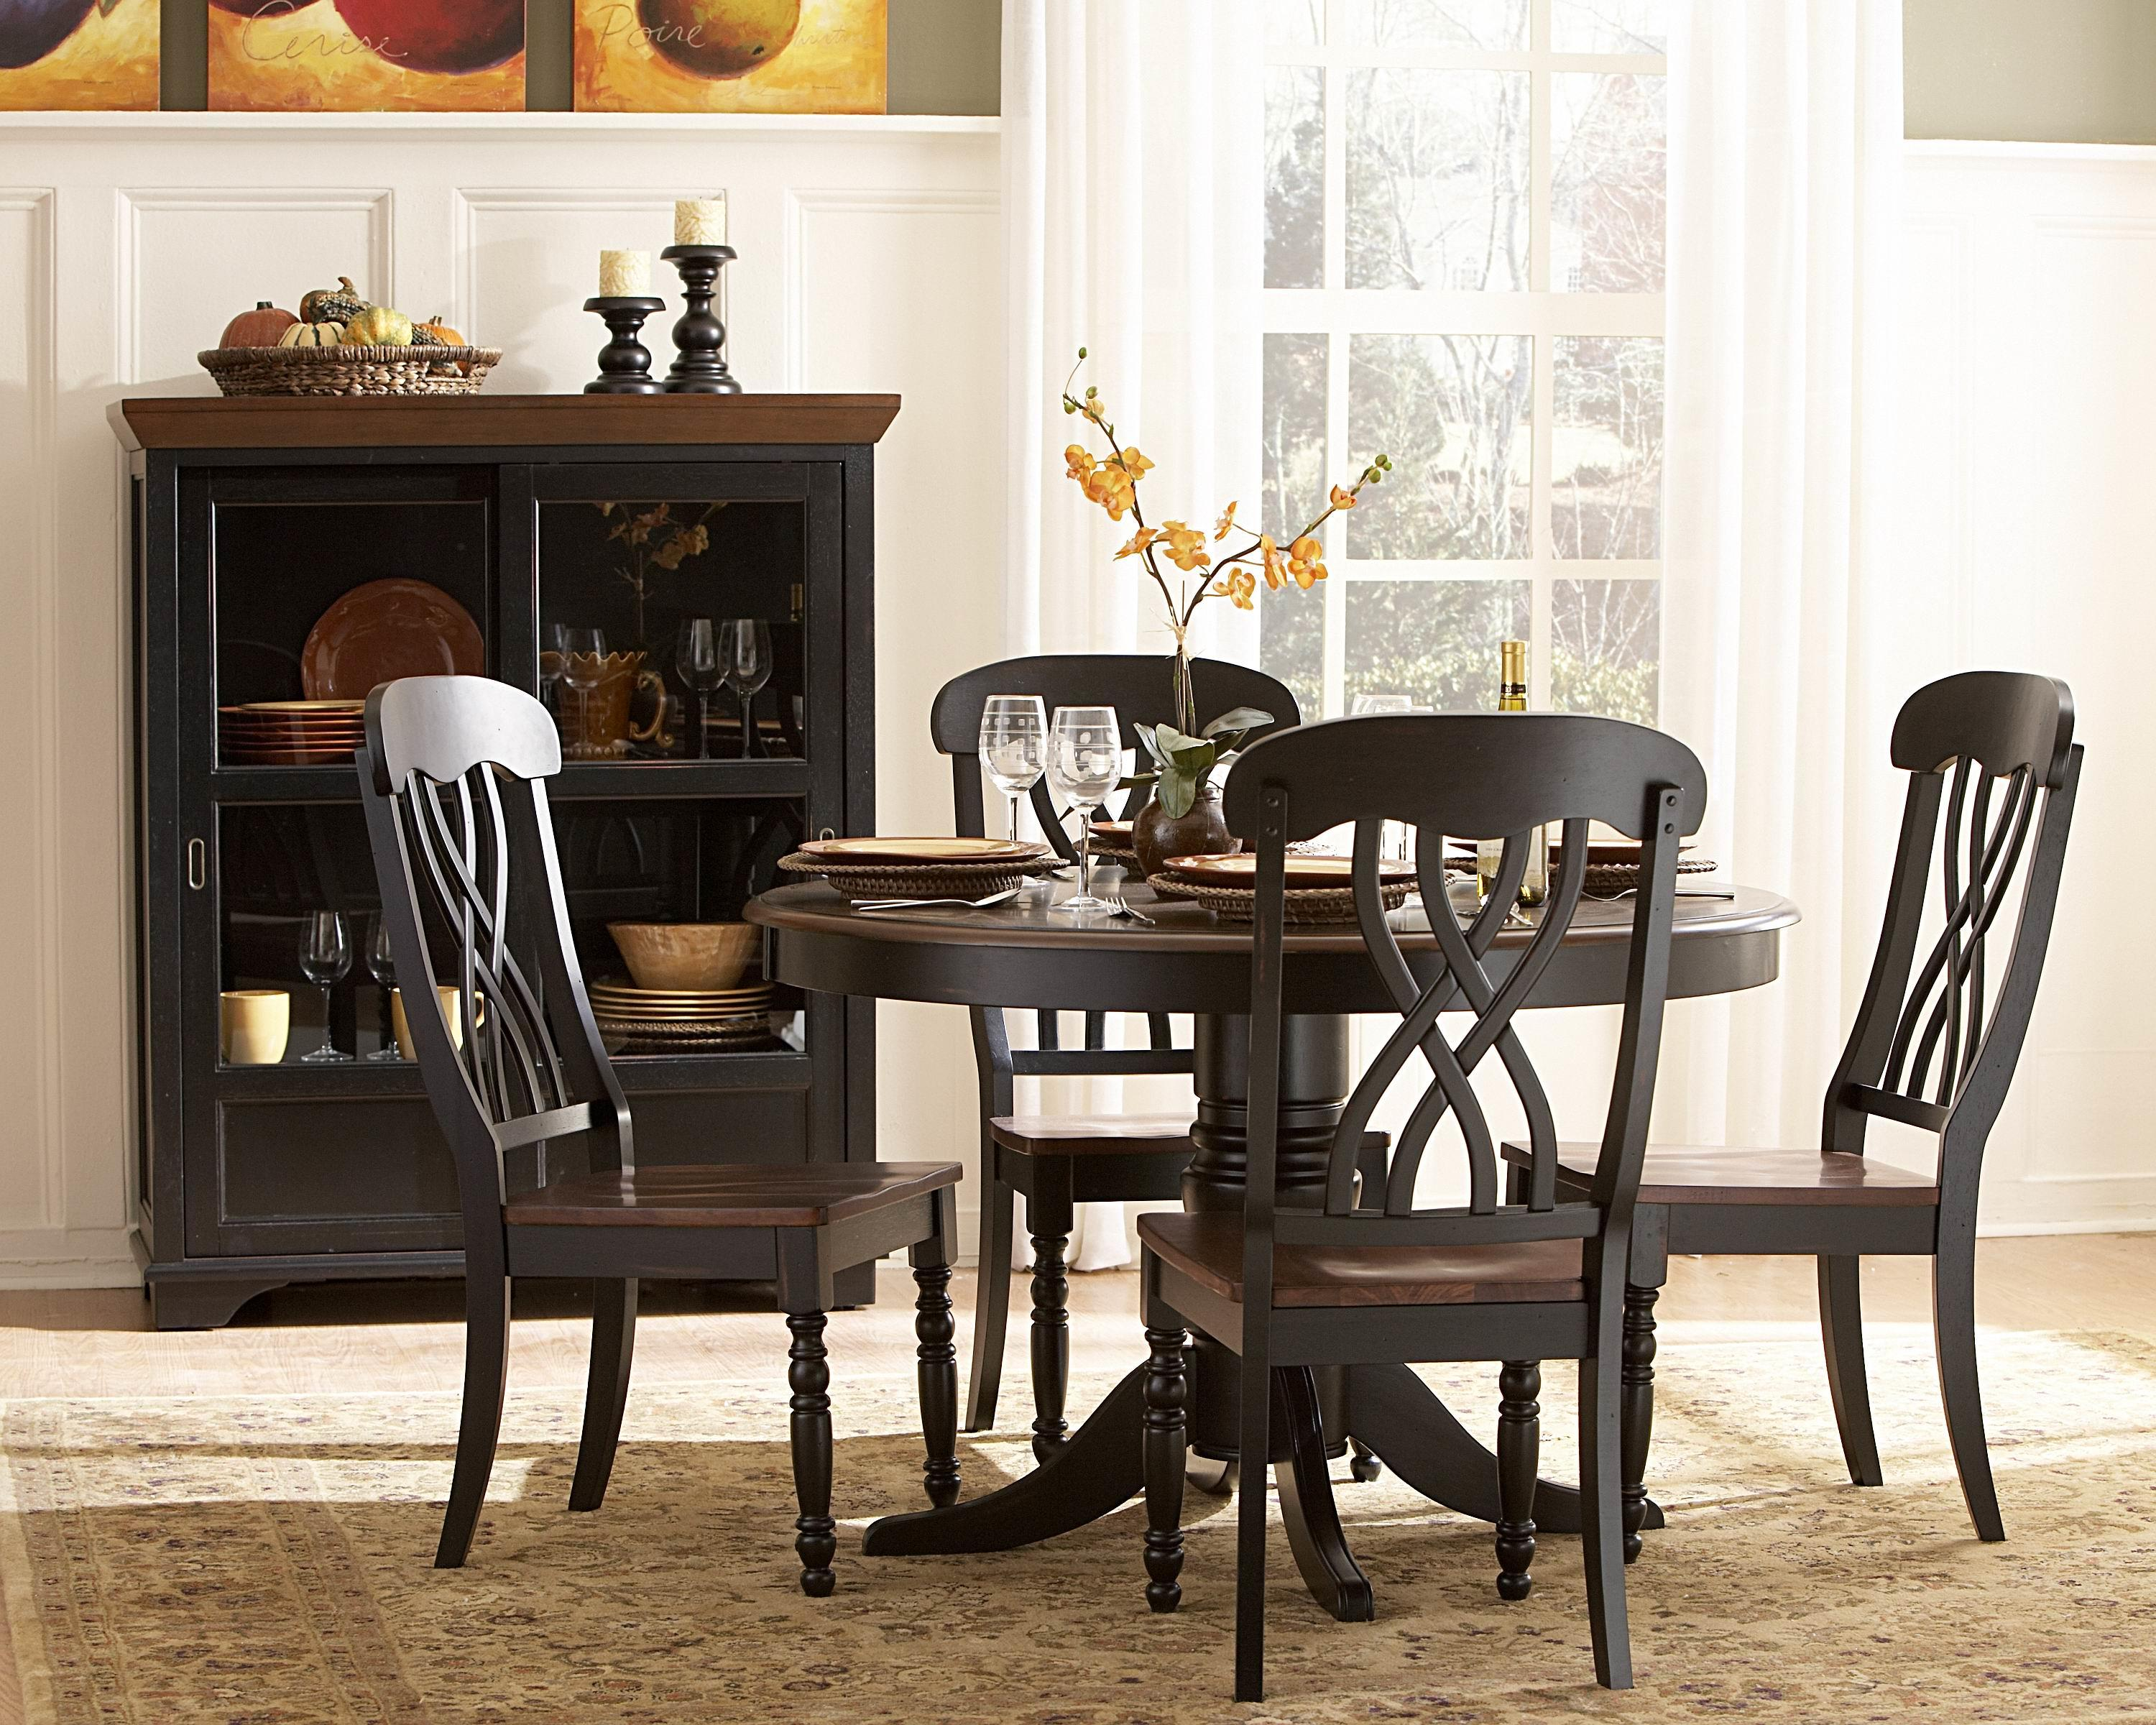 Dark Wood Dining Room Chairs romantic stunning dark wood dining room table at Wood Round Table 4 Chairs Rug Buffet